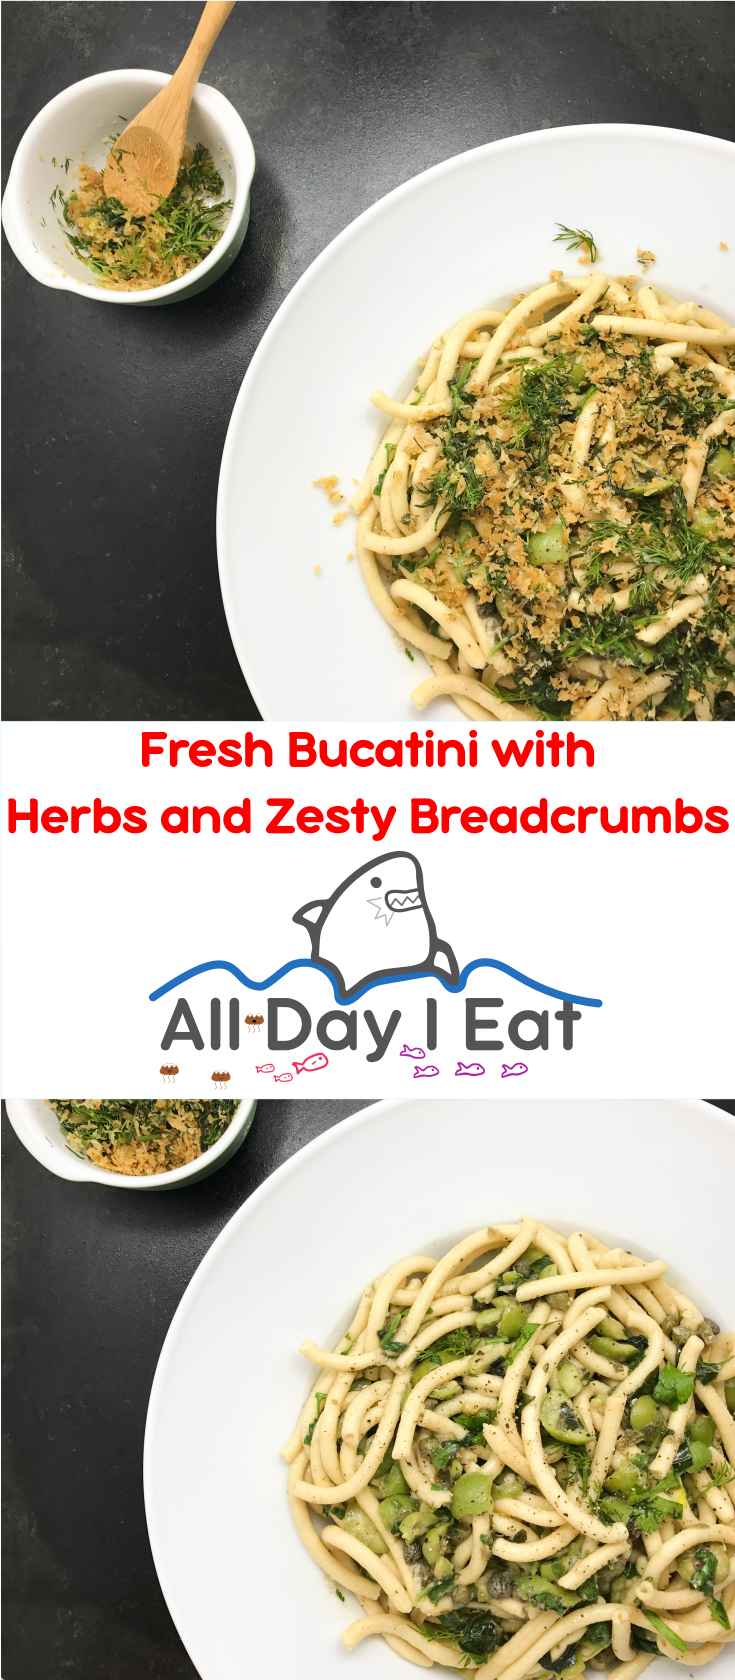 Bucatini with Fresh Herbs and Zesty Breadcrumbs. Make this with fresh pasta to allow the herbs and olives shine like the sun! | www.alldayieat.com